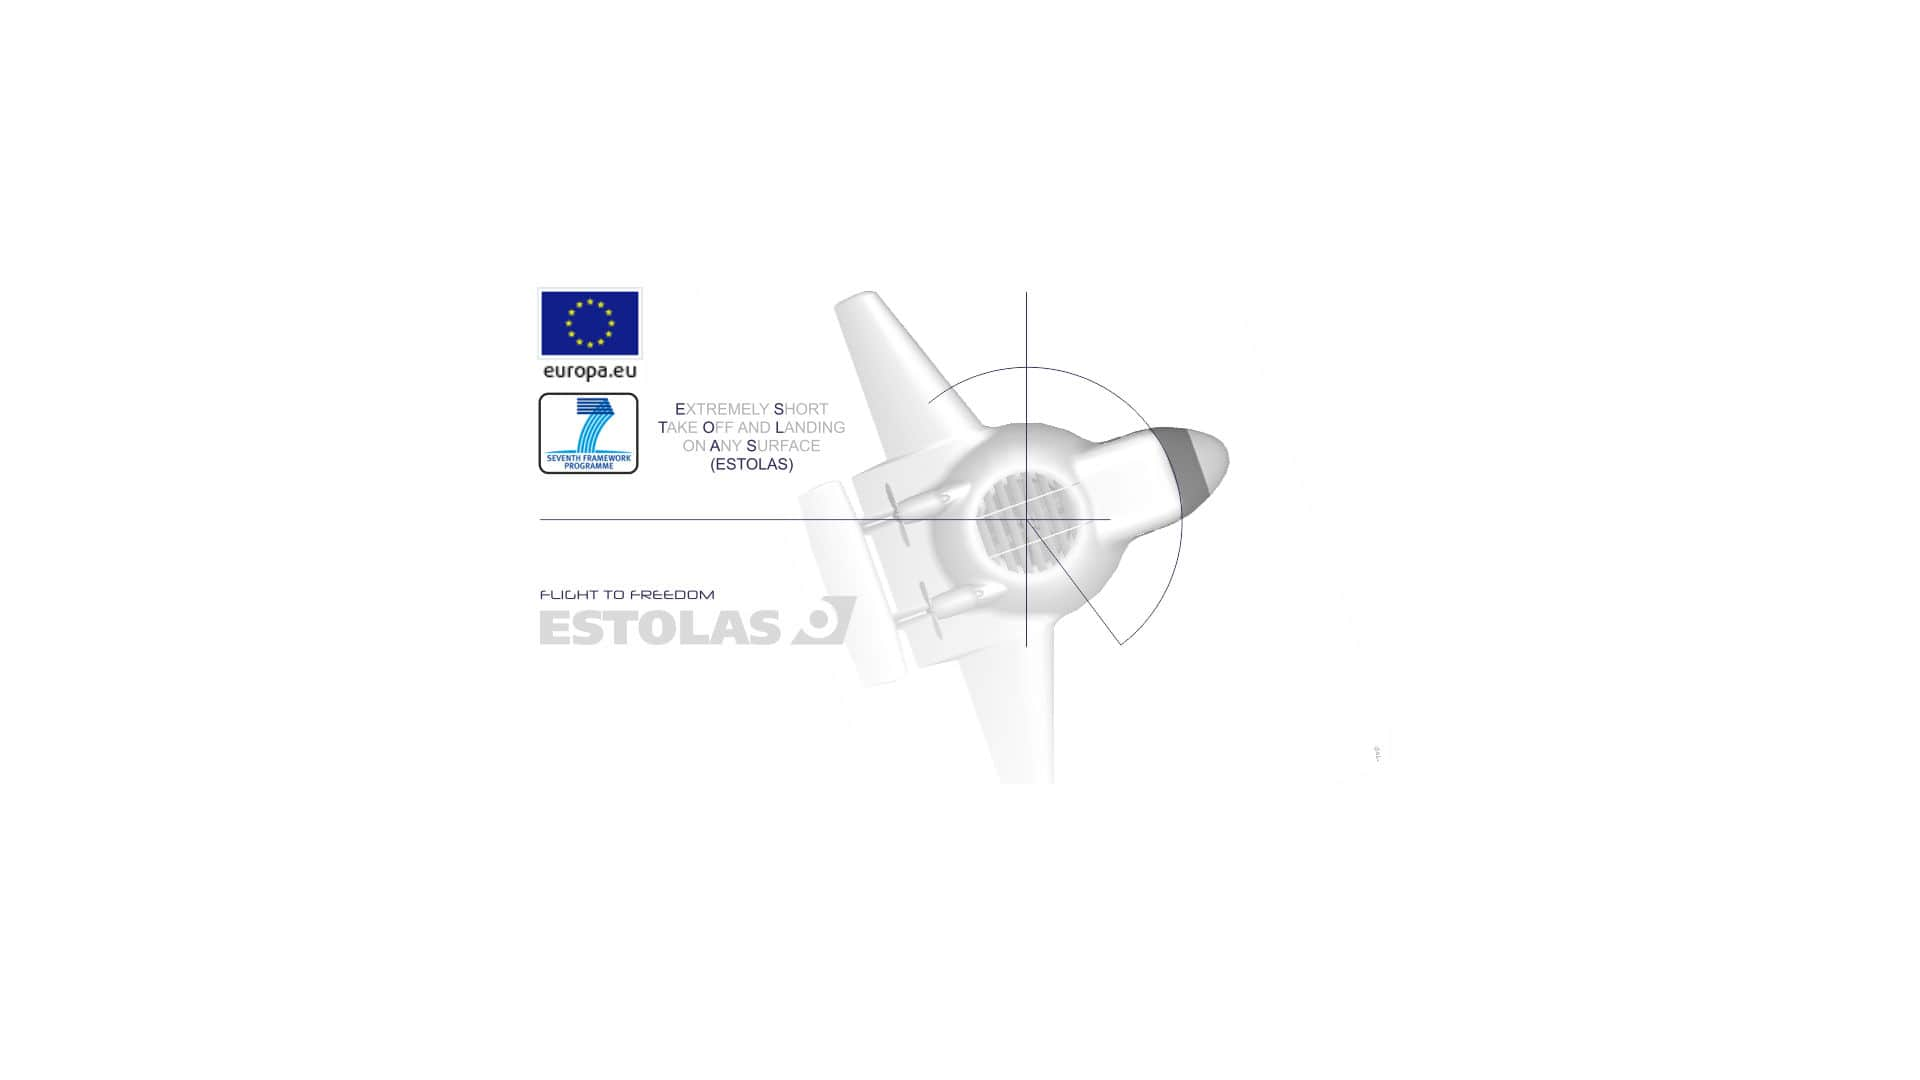 Estolas European Union Project